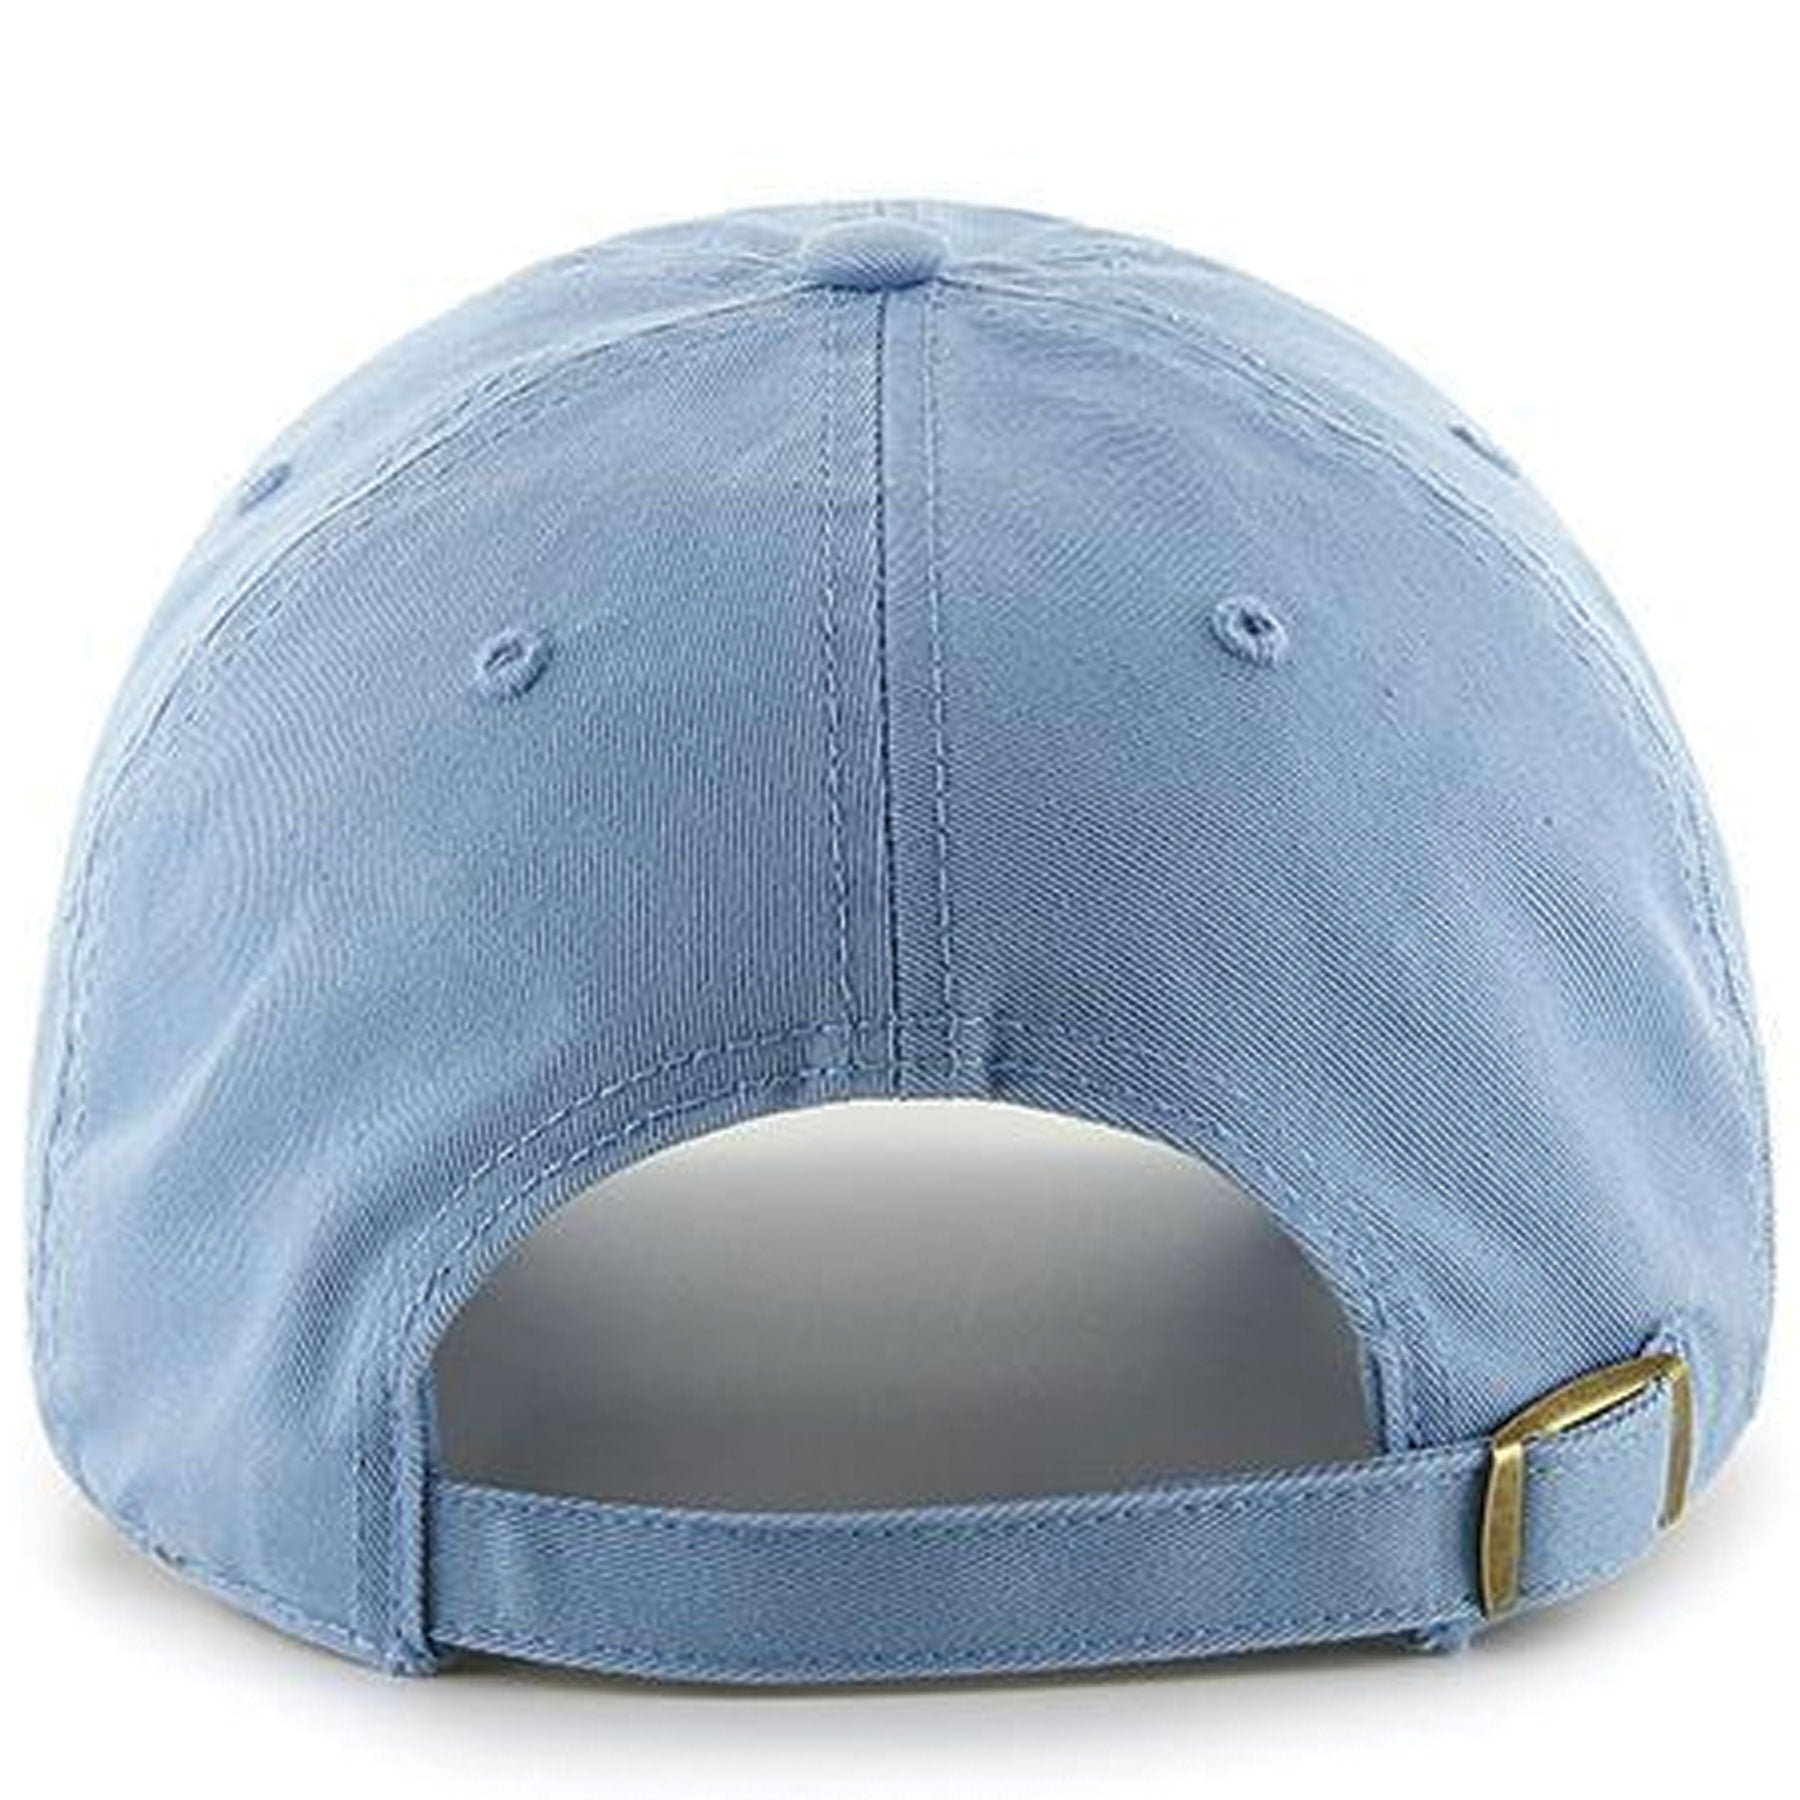 ee3c27d6 ... the back of the toronto blue jays retro dad hat has a light blue  adjustable strap